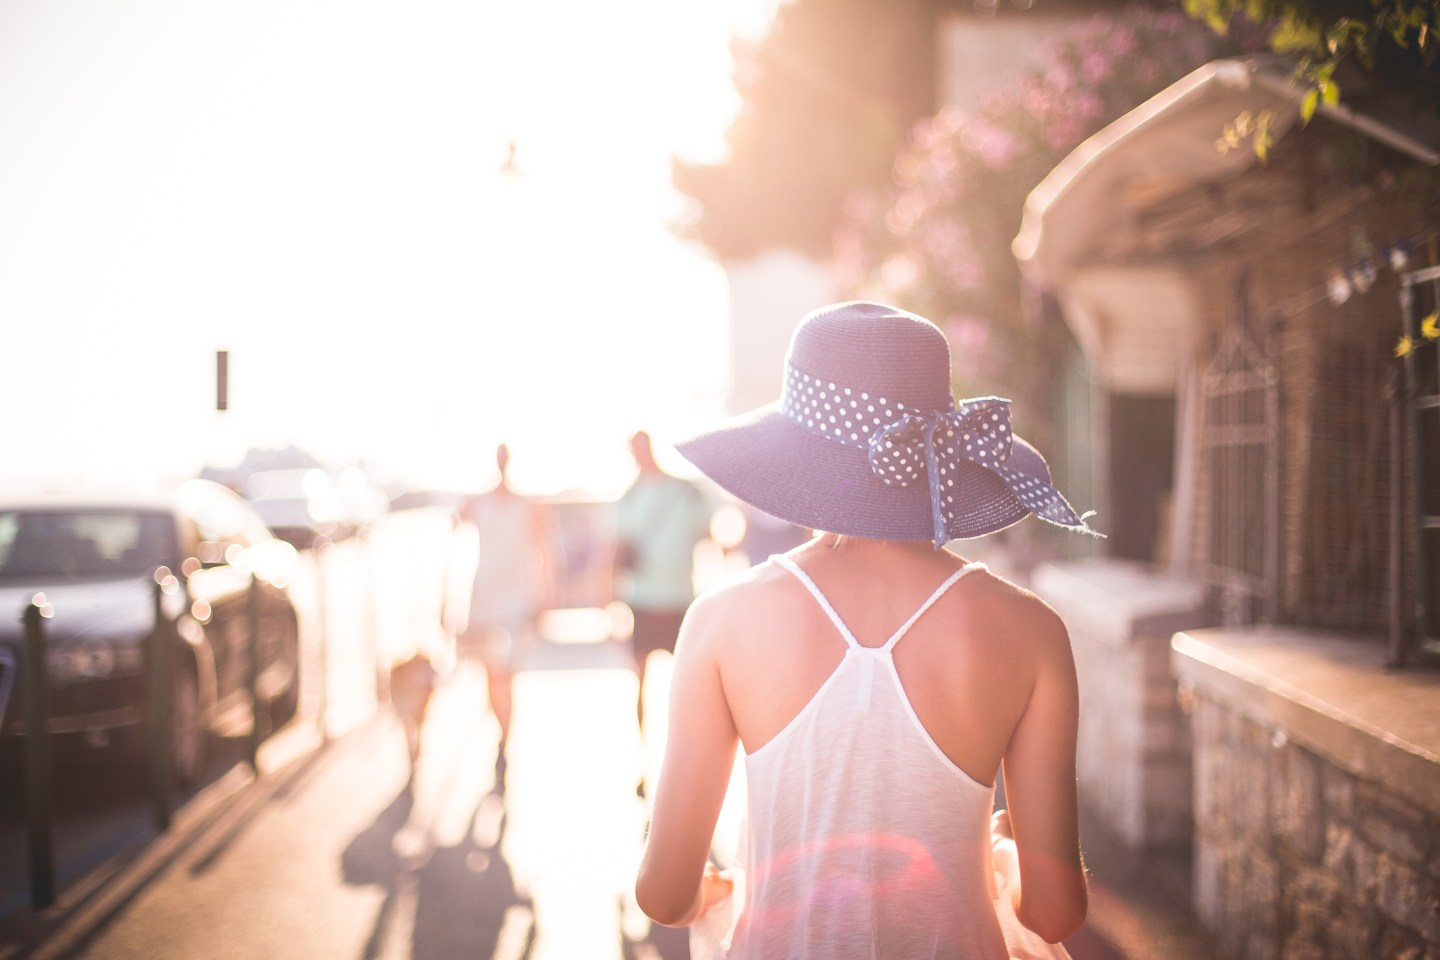 beautiful-girl-with-hat-in-sun-picjumbo-com